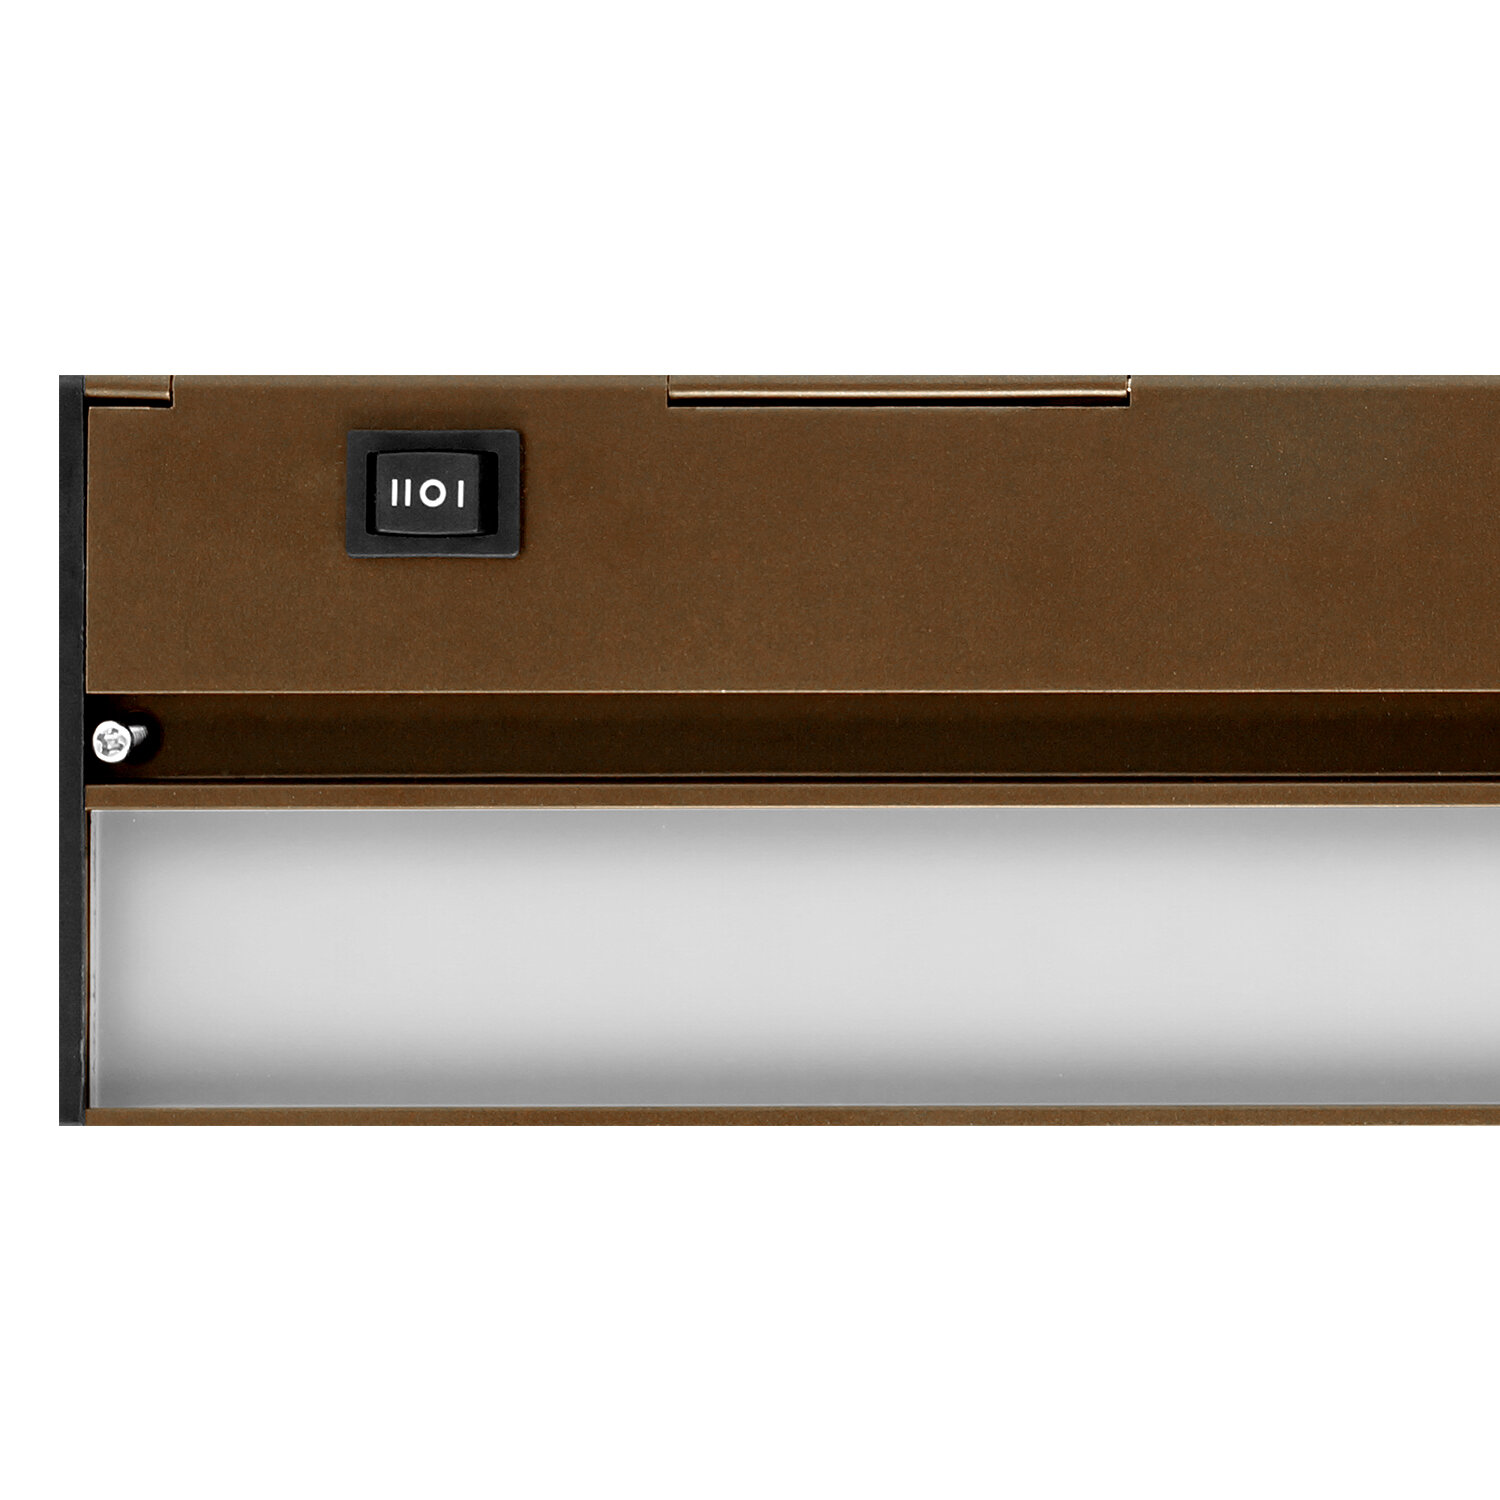 Armoire Bar Blanc Laqu Led Fenrez Com Sammlung Von Design  # Armoire Bar Blanc Laque Led